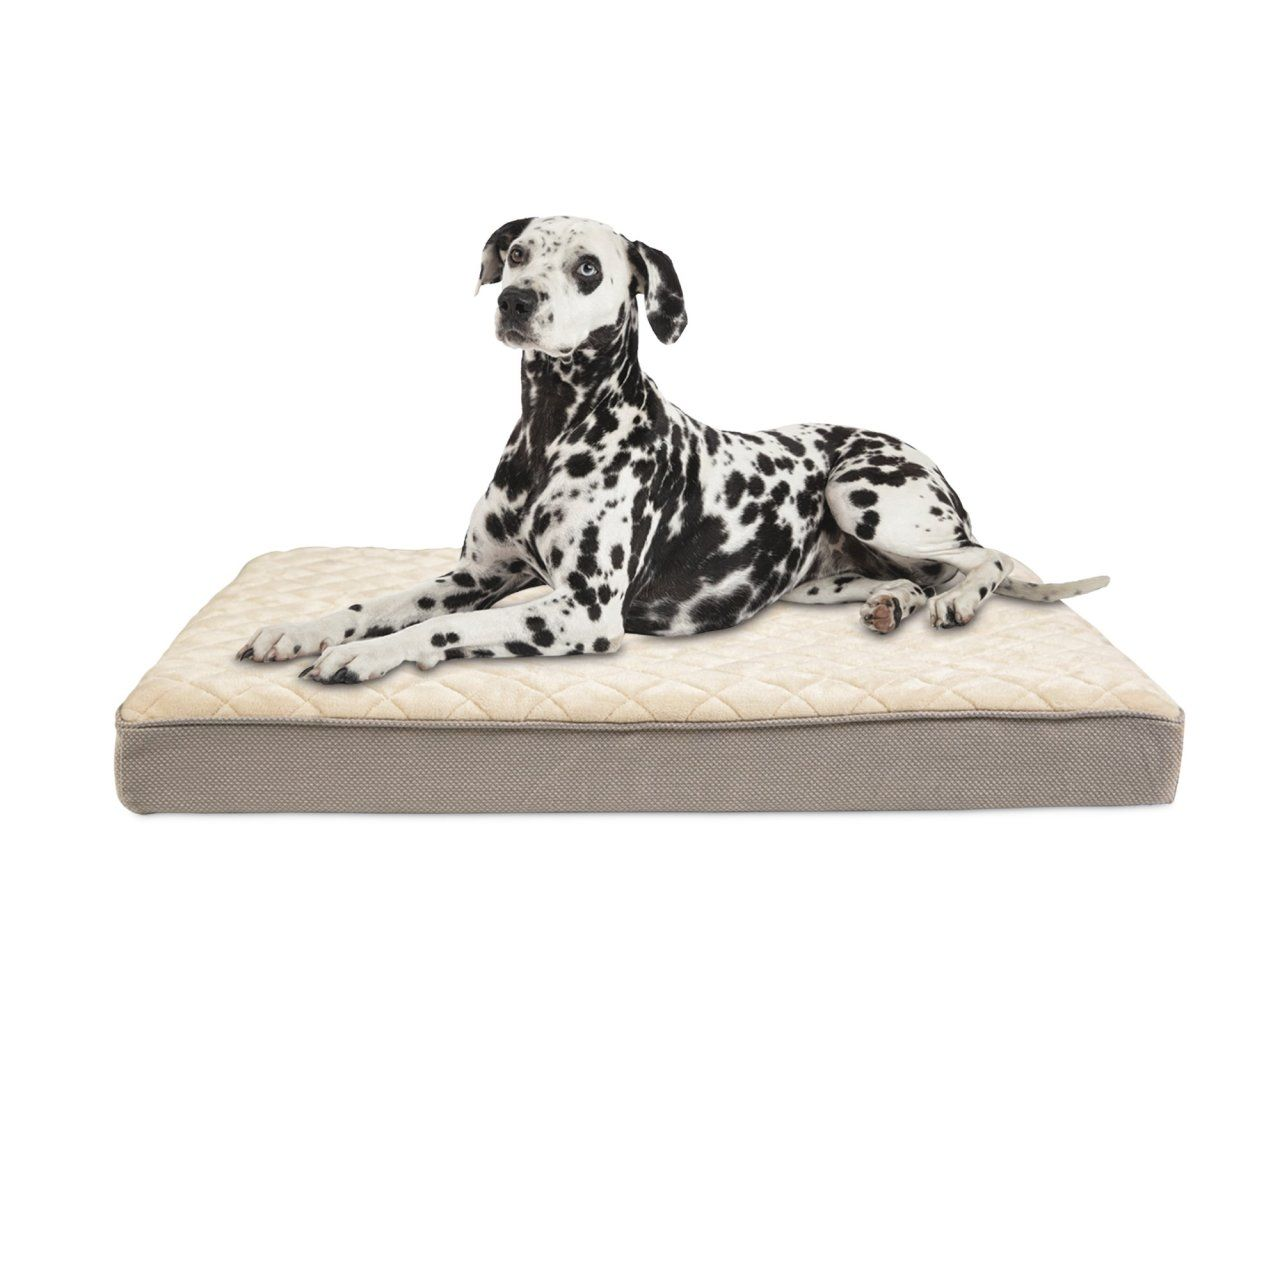 Bookdrawer Doctors Foster Smith Orthopedic Lounger Dog Bed Foster And Smith Orthopedic Dog Bed Dog Bed